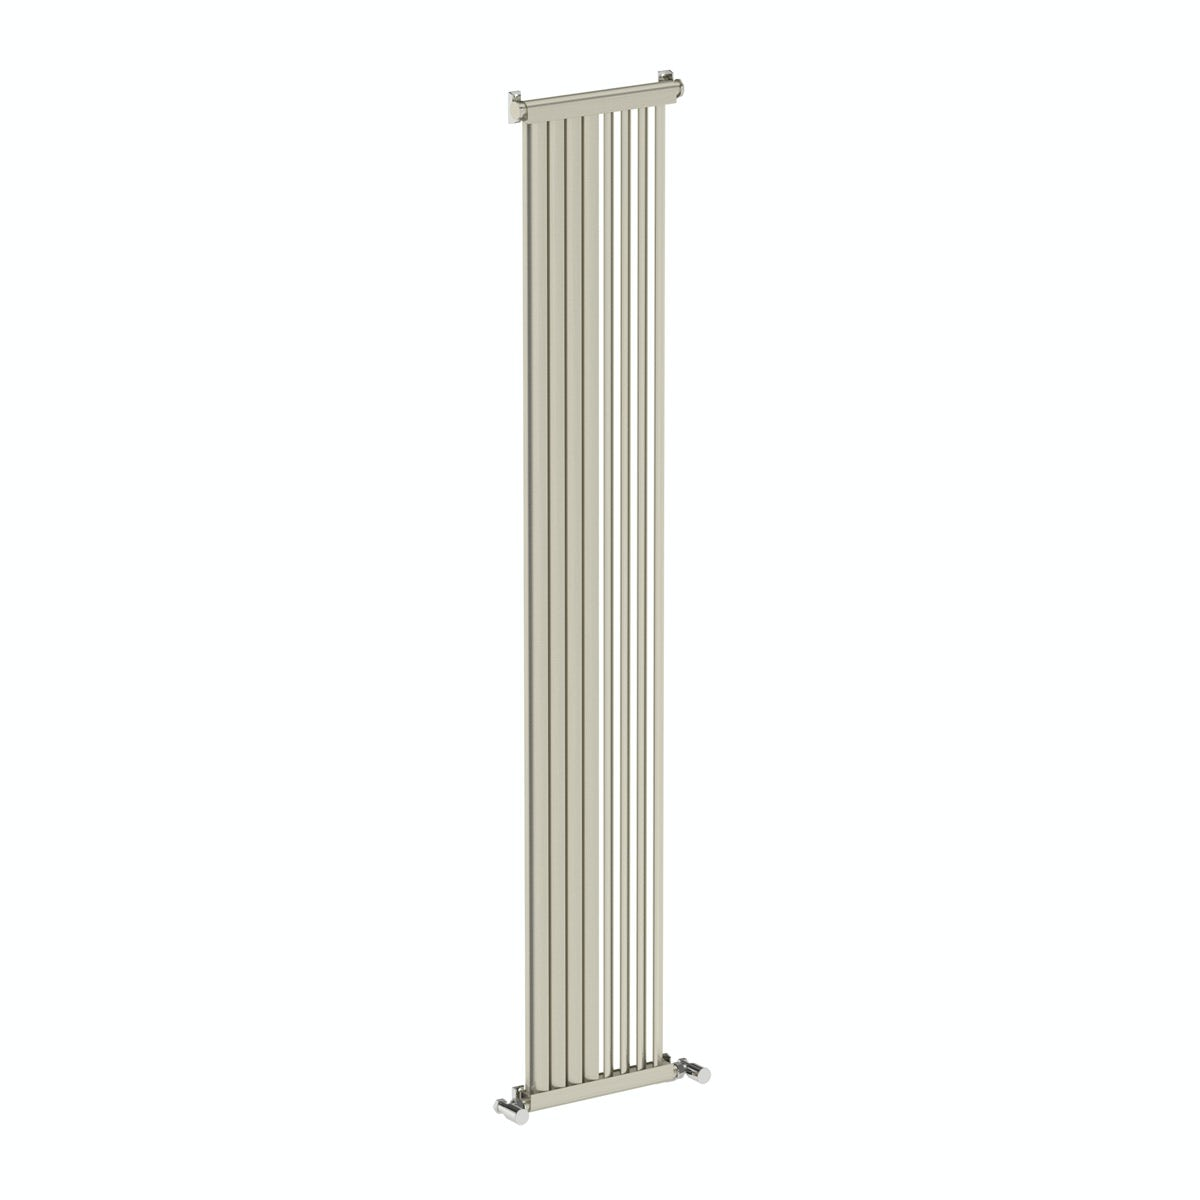 Mode Zephyra vertical radiator 1800 x 328